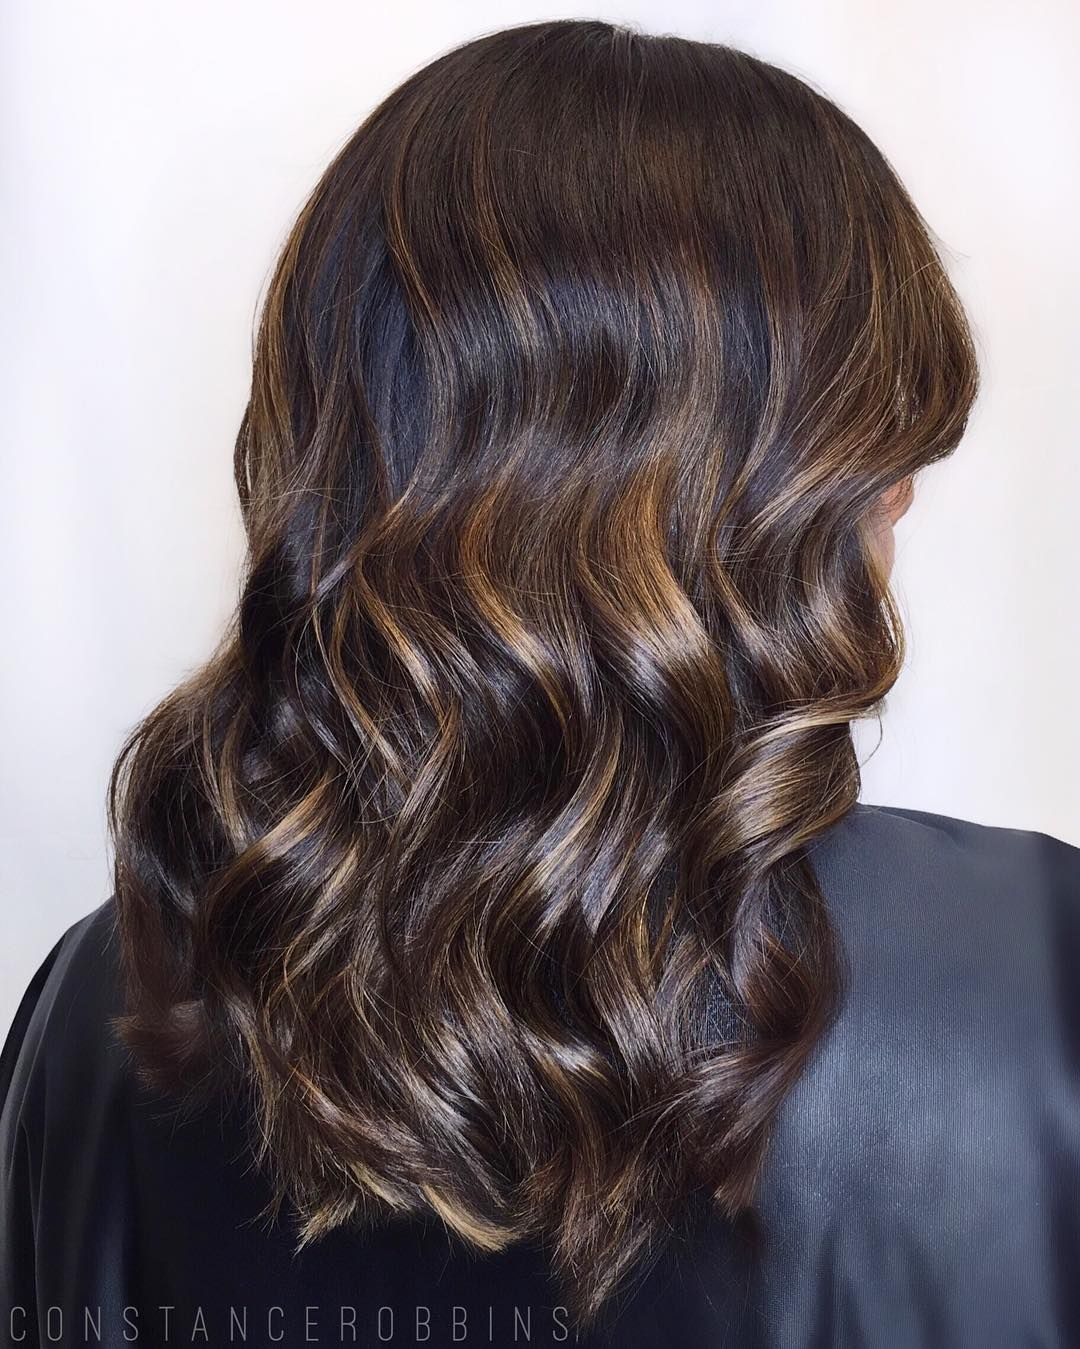 60 Looks With Caramel Highlights On Brown And Dark Brown Hair Black Hair With Highlights Golden Brown Hair Light Brown Hair